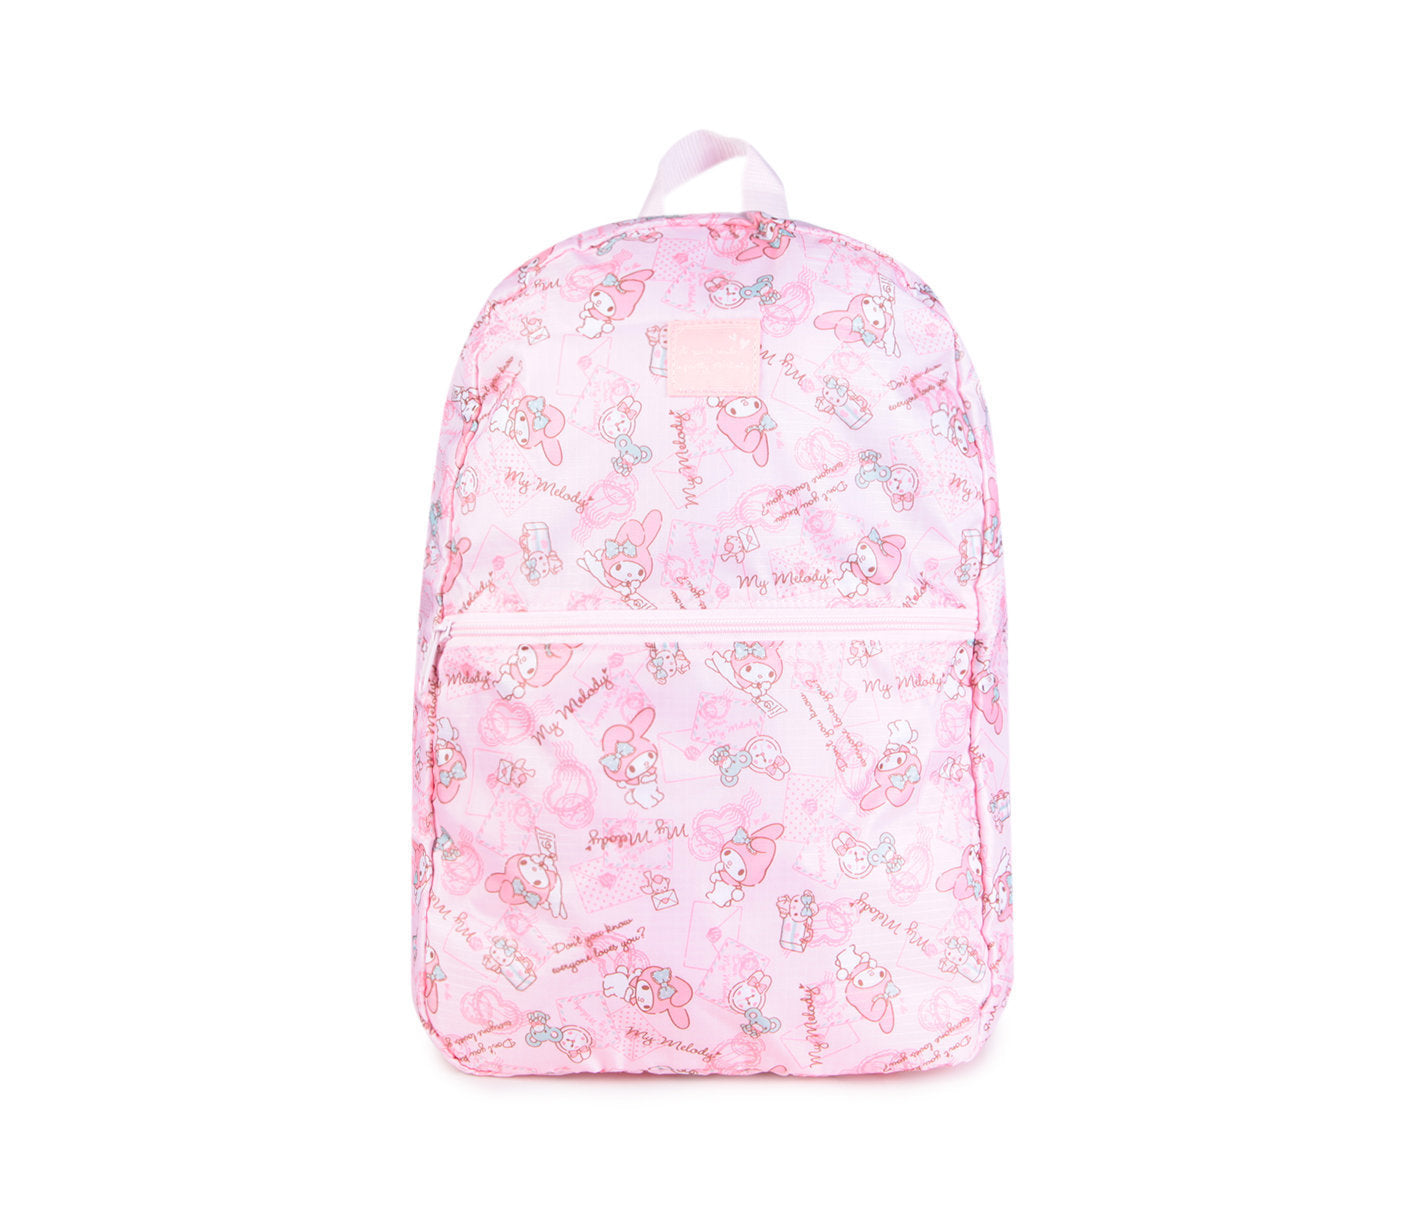 My Melody Foldable Backpack: Travel